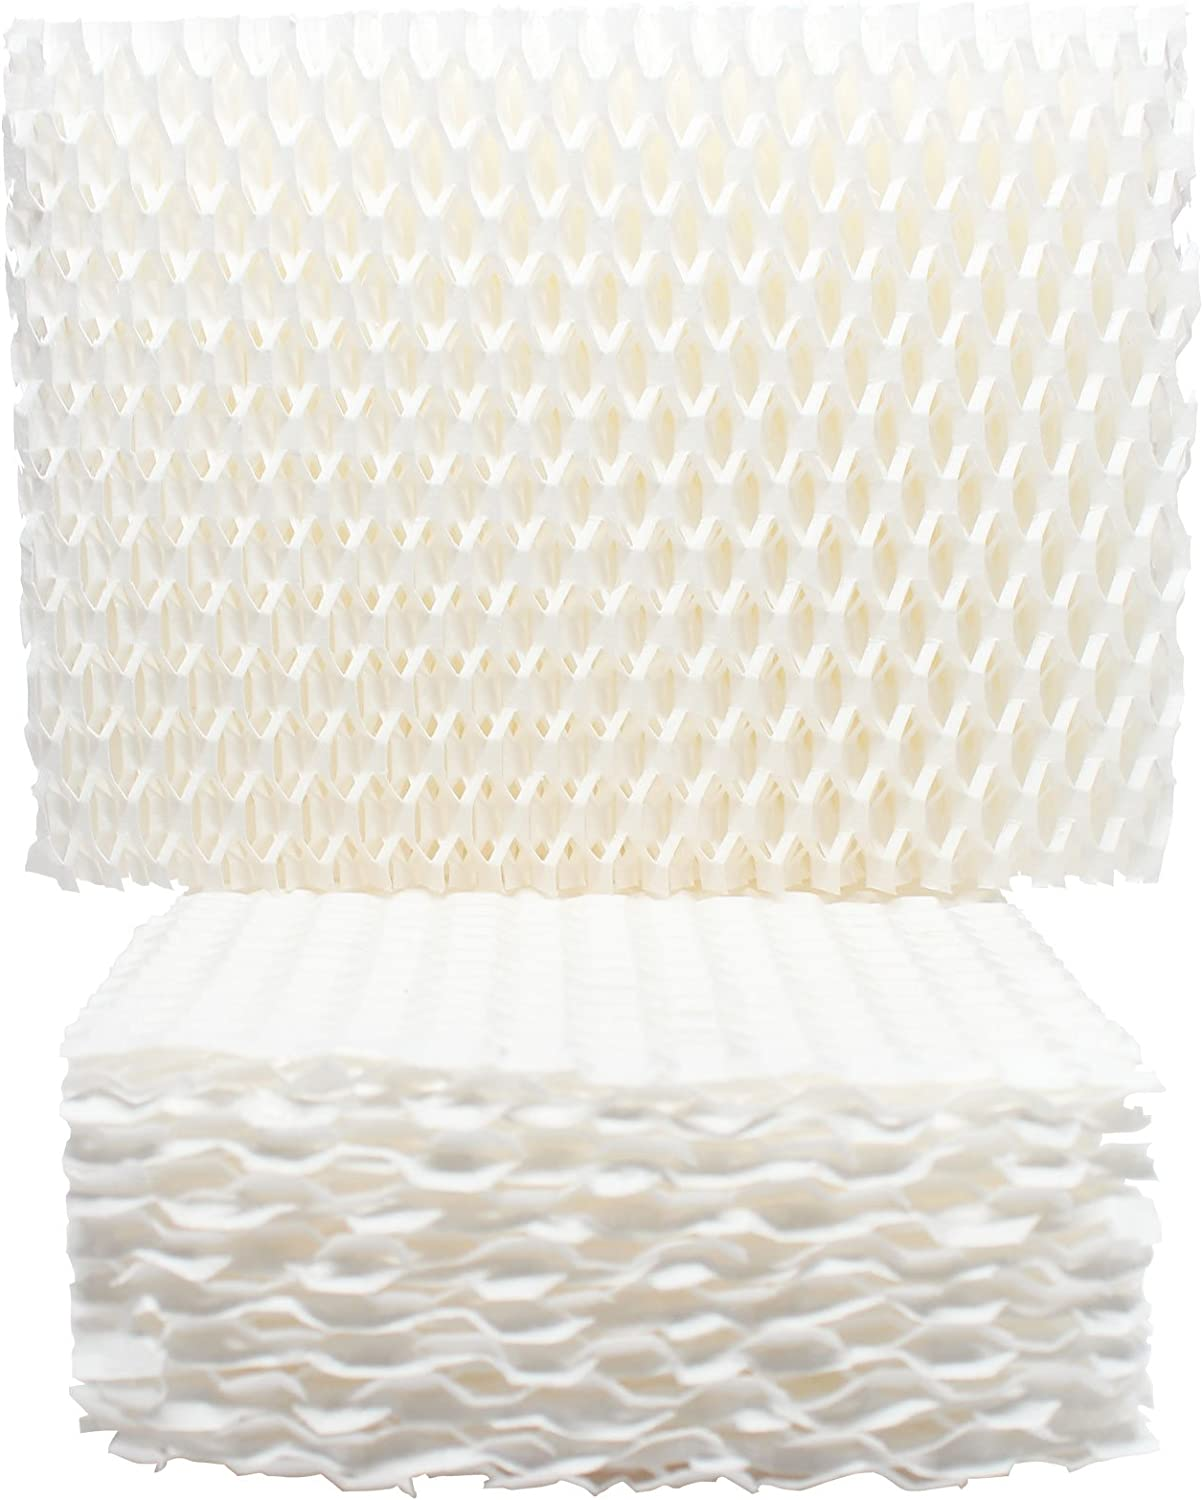 Upstart Battery 2-Pack Replacement for Graco Cool Mist Humidifier 1.5 Gallon Humidifier Filter - Compatible with Graco 2H001 Air Filter